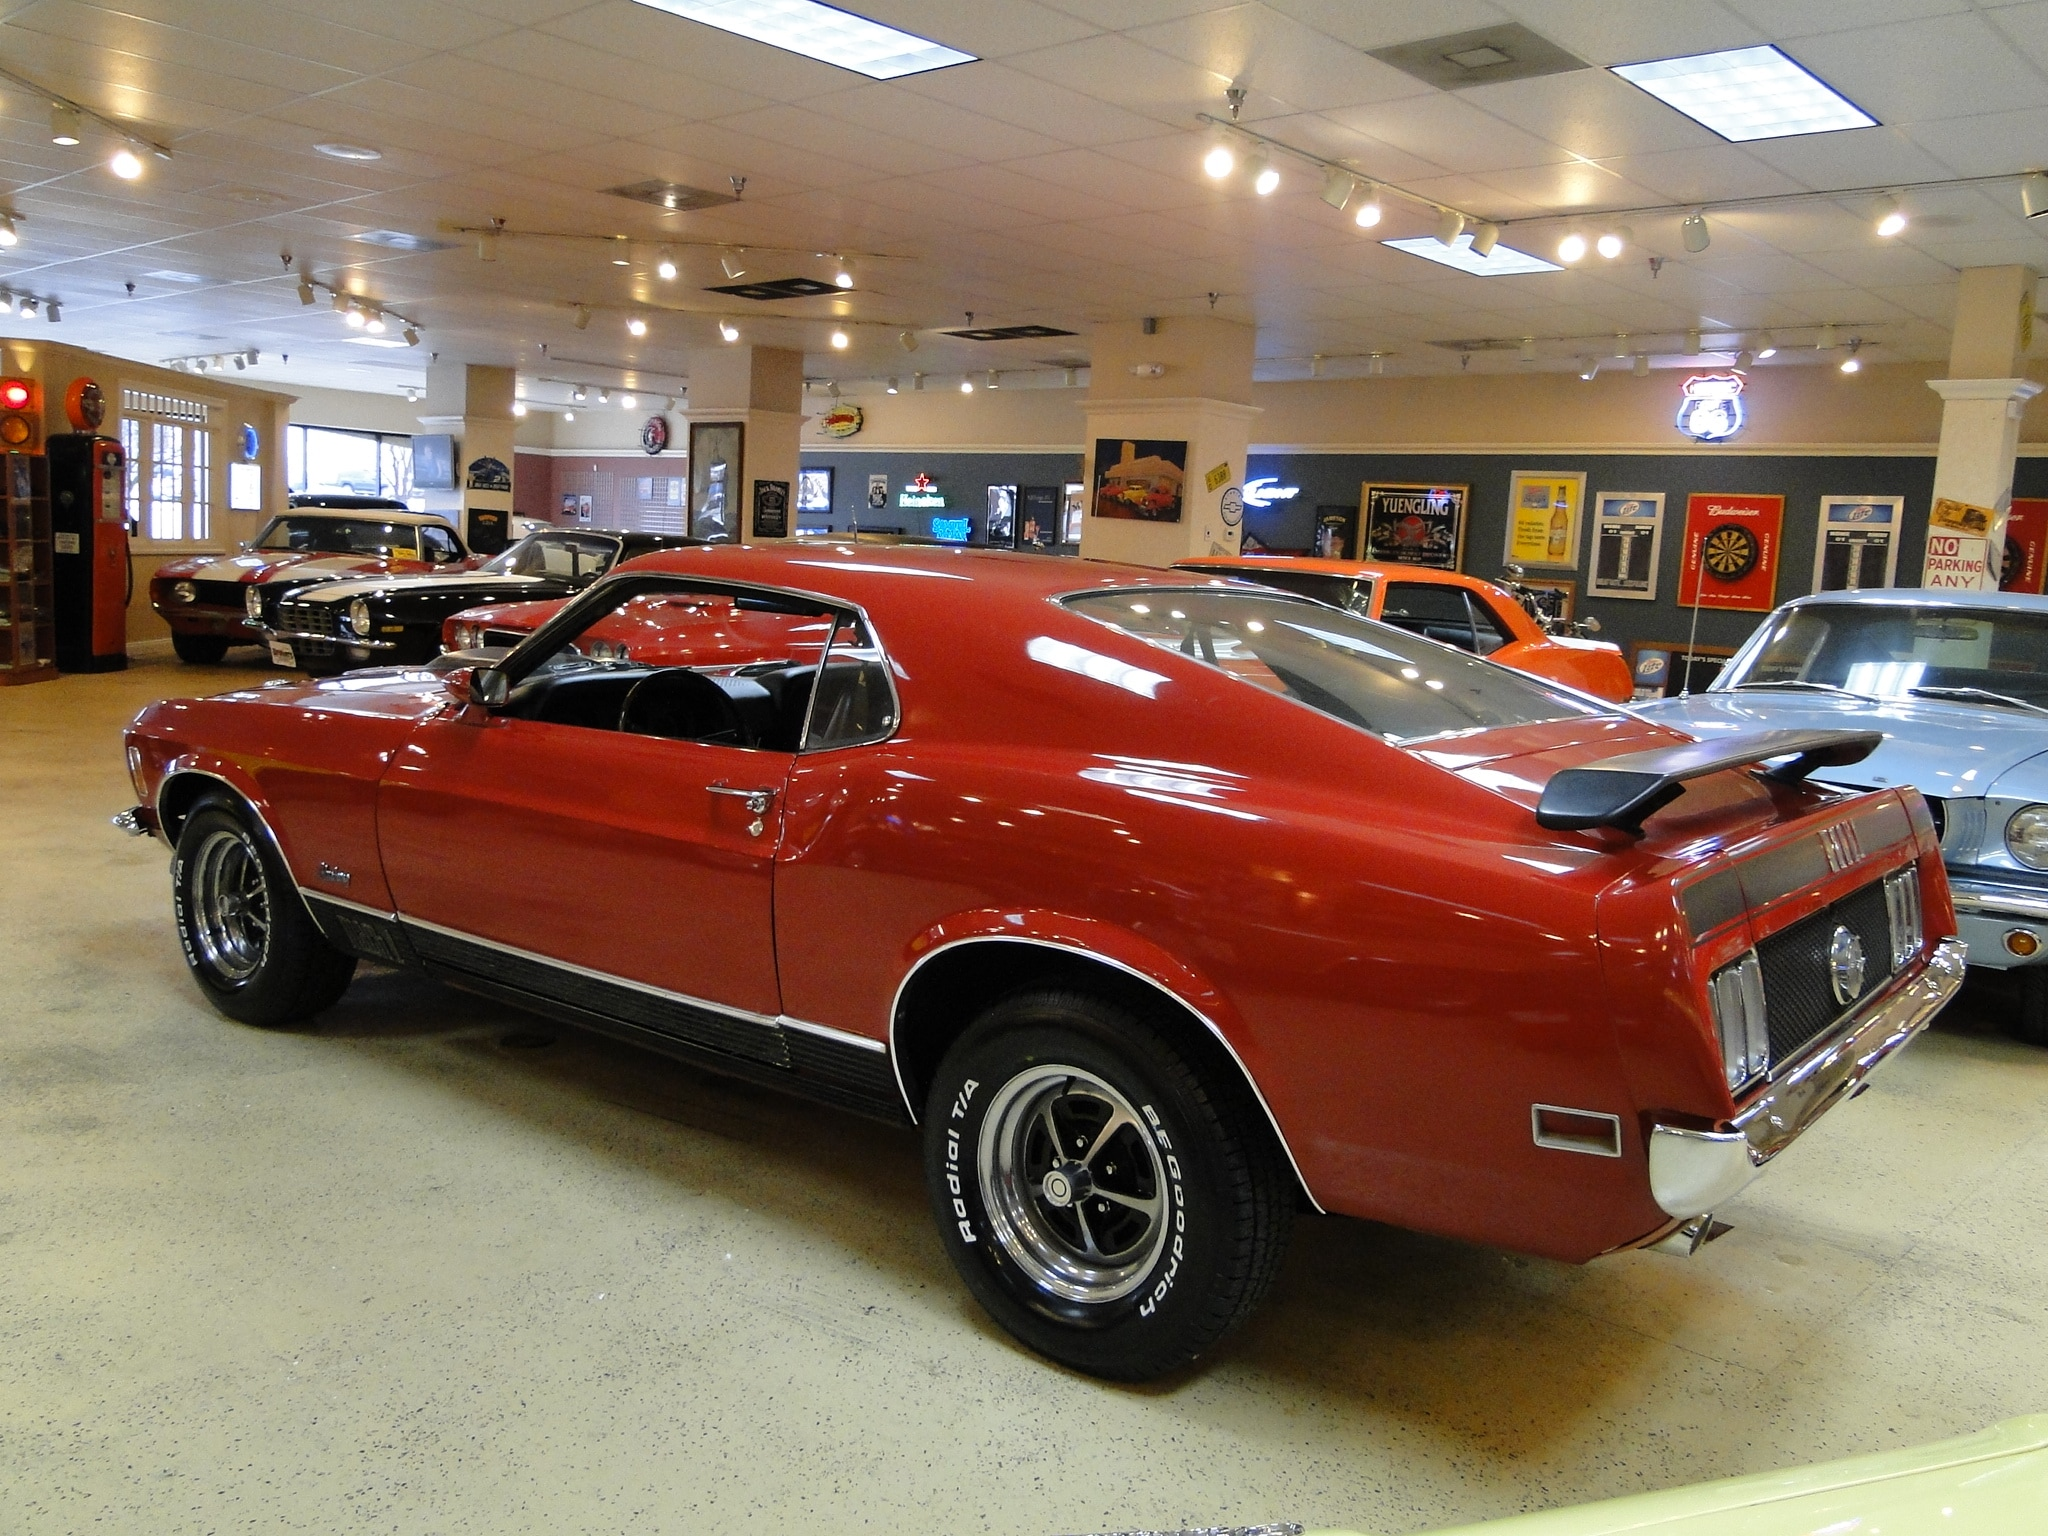 Classic Ford Mustang Mach 1 for Sale on